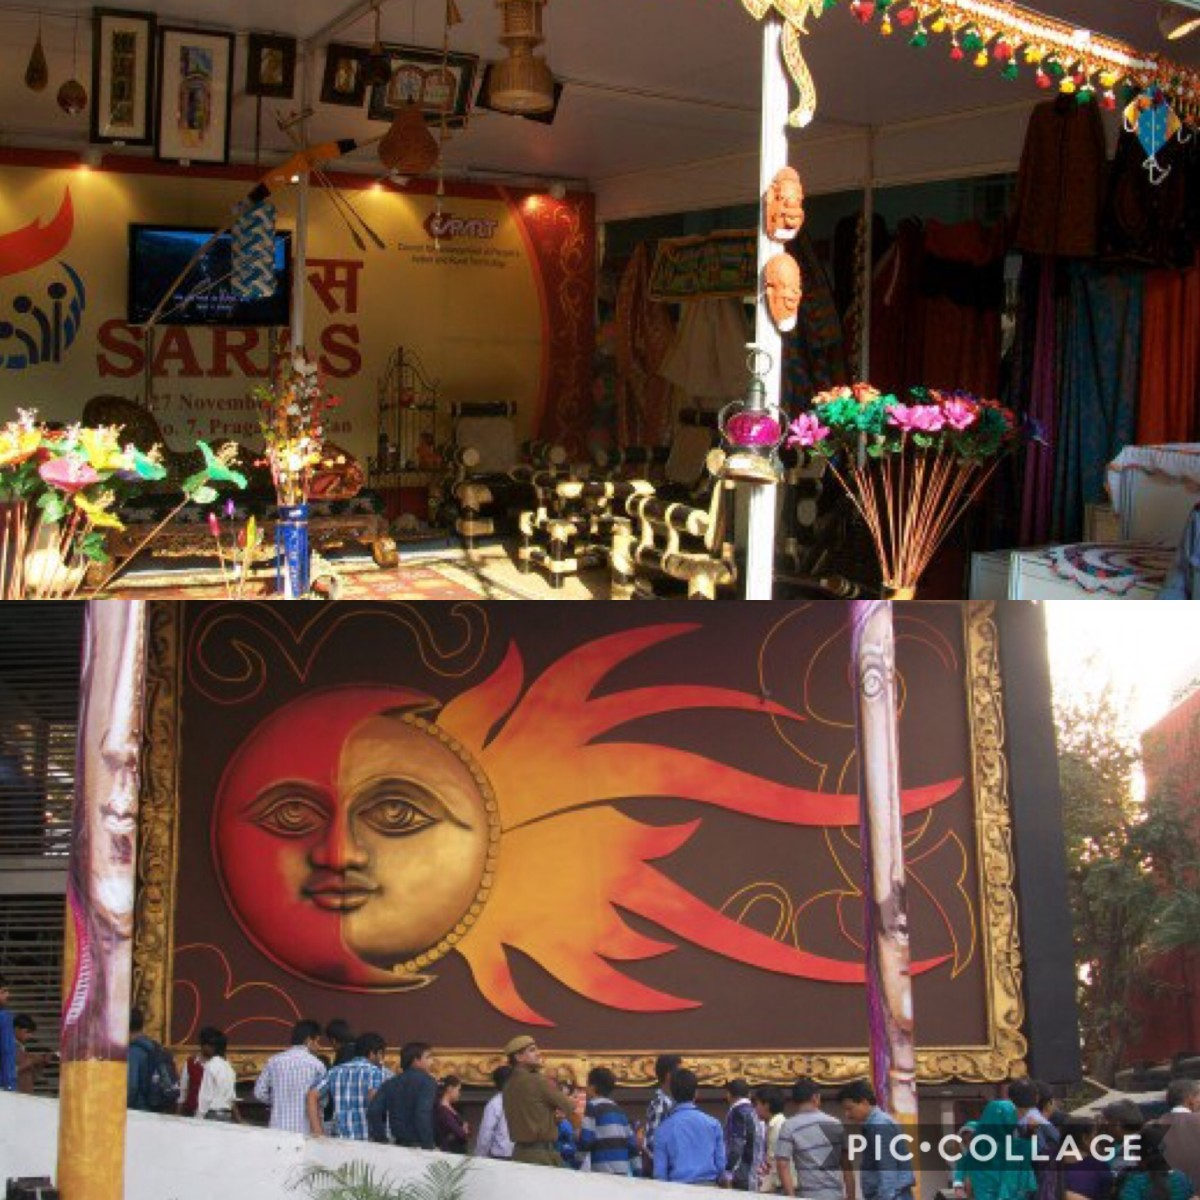 Glimpses of the art exhibition at New Delhi Trade Fair grounds, Bamboo furniture and Sun paintings